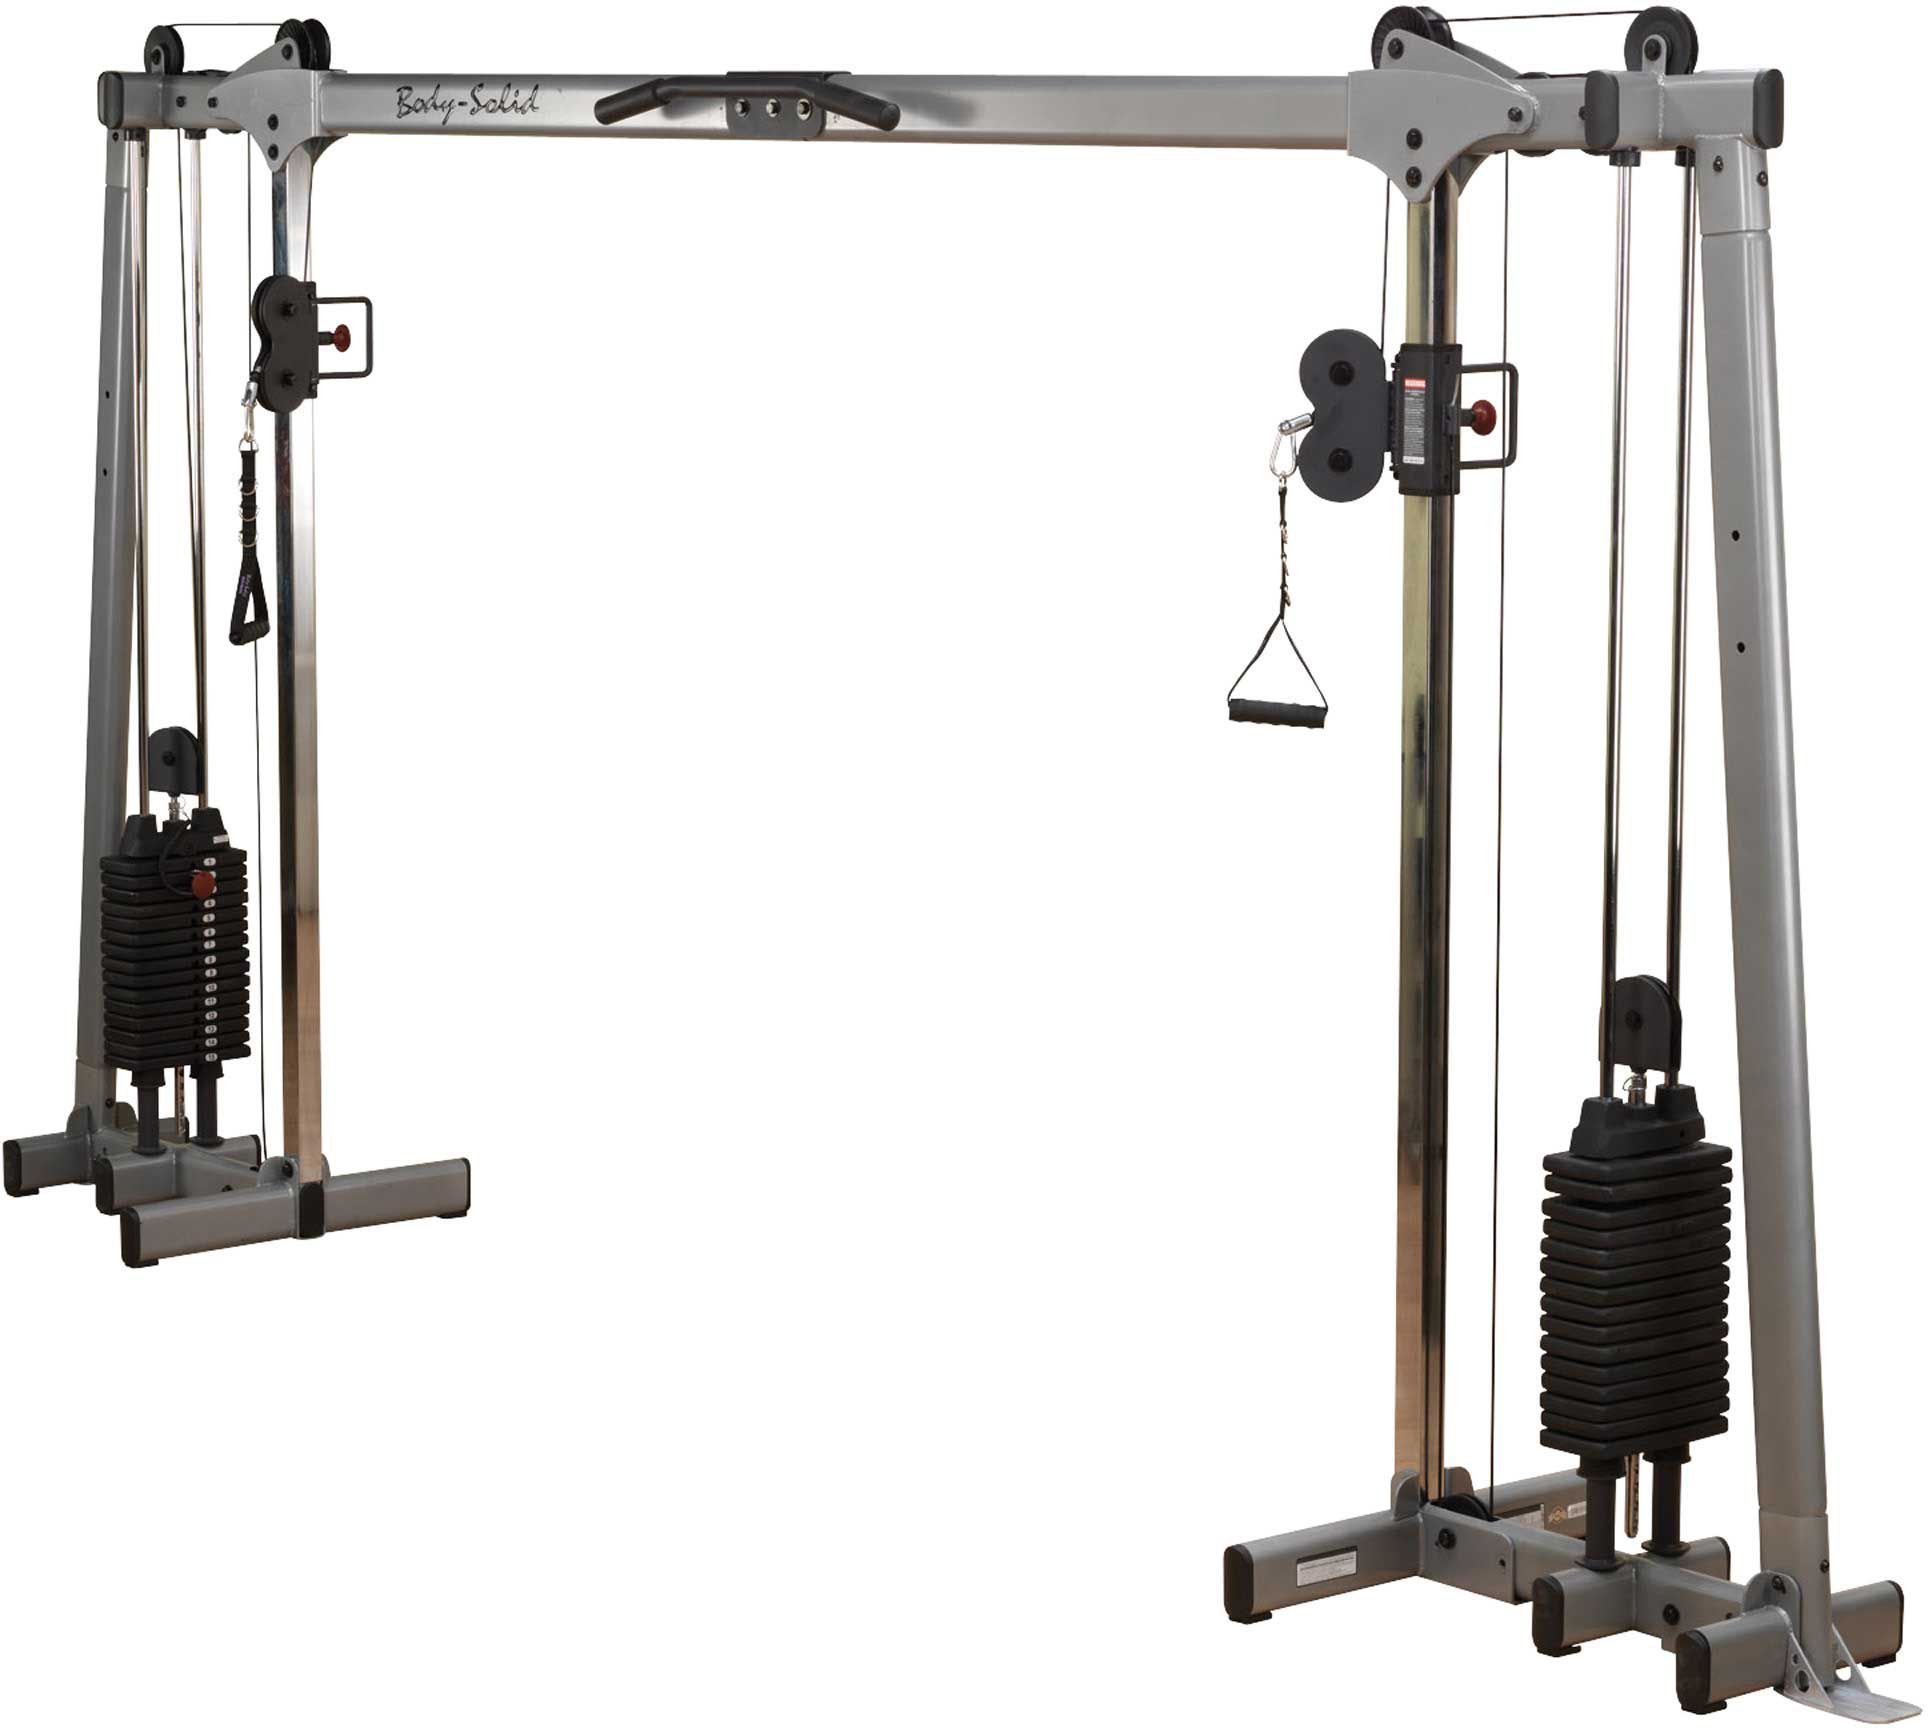 Body solid cable crossover products no equipment workout gym